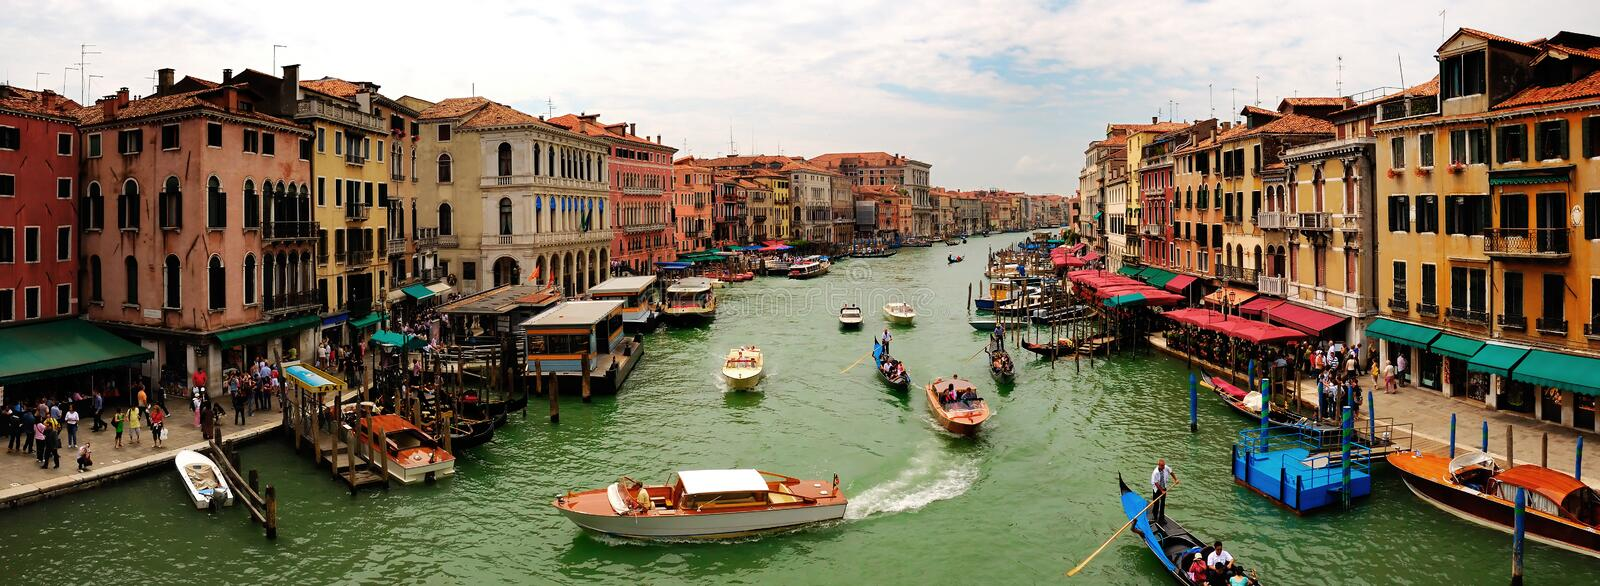 Panoramic view of the Grand Canal stock images